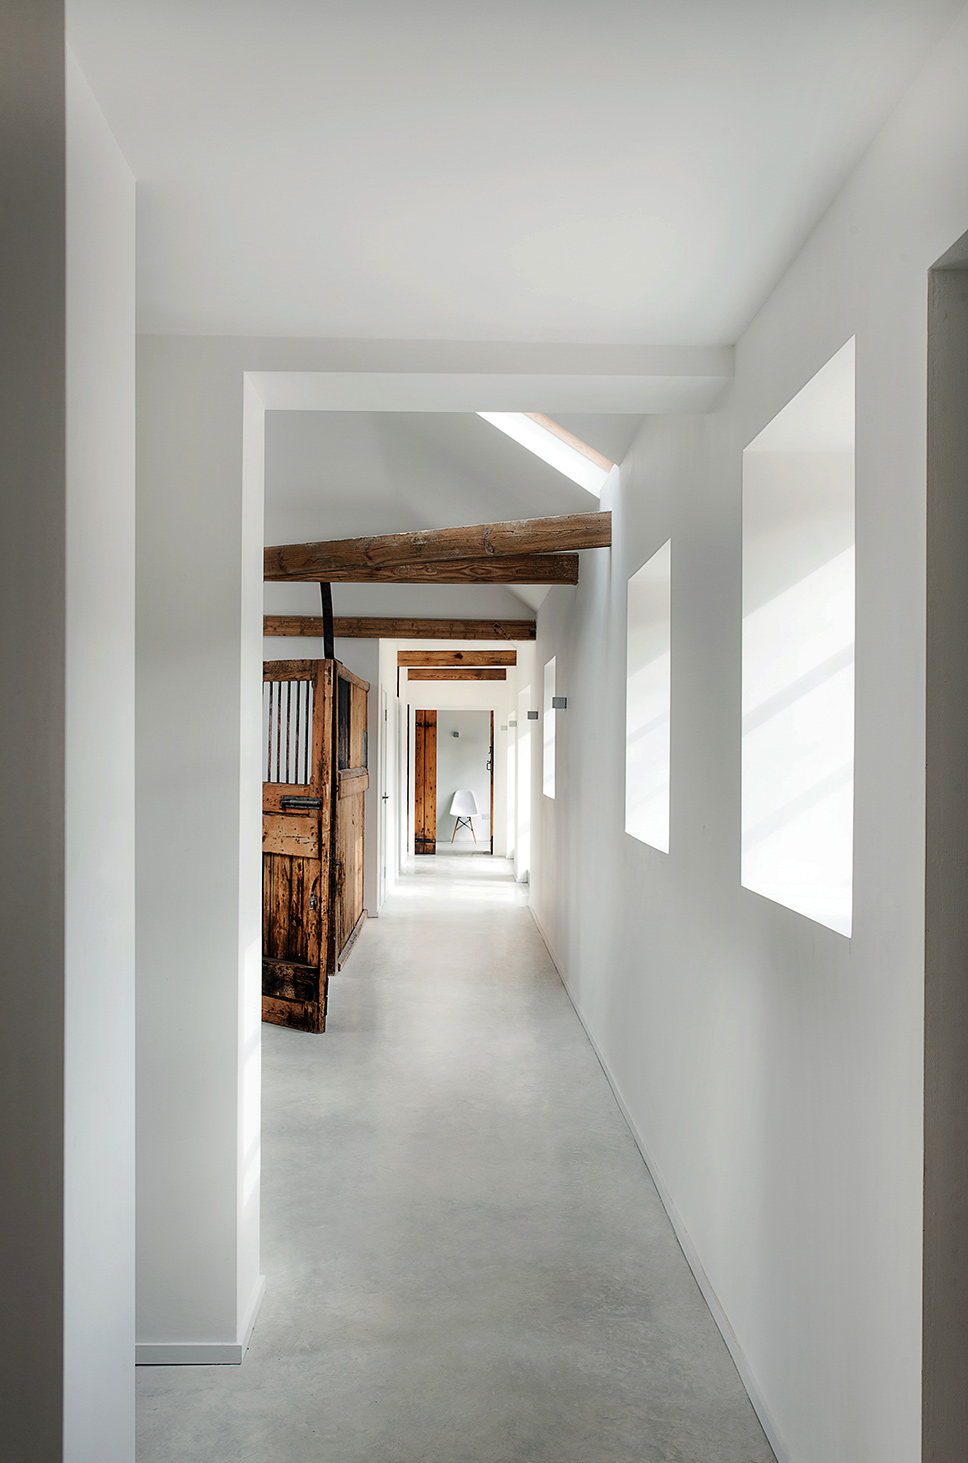 Purpose and Beauty of a corridor: How to make your ... |House Corridors